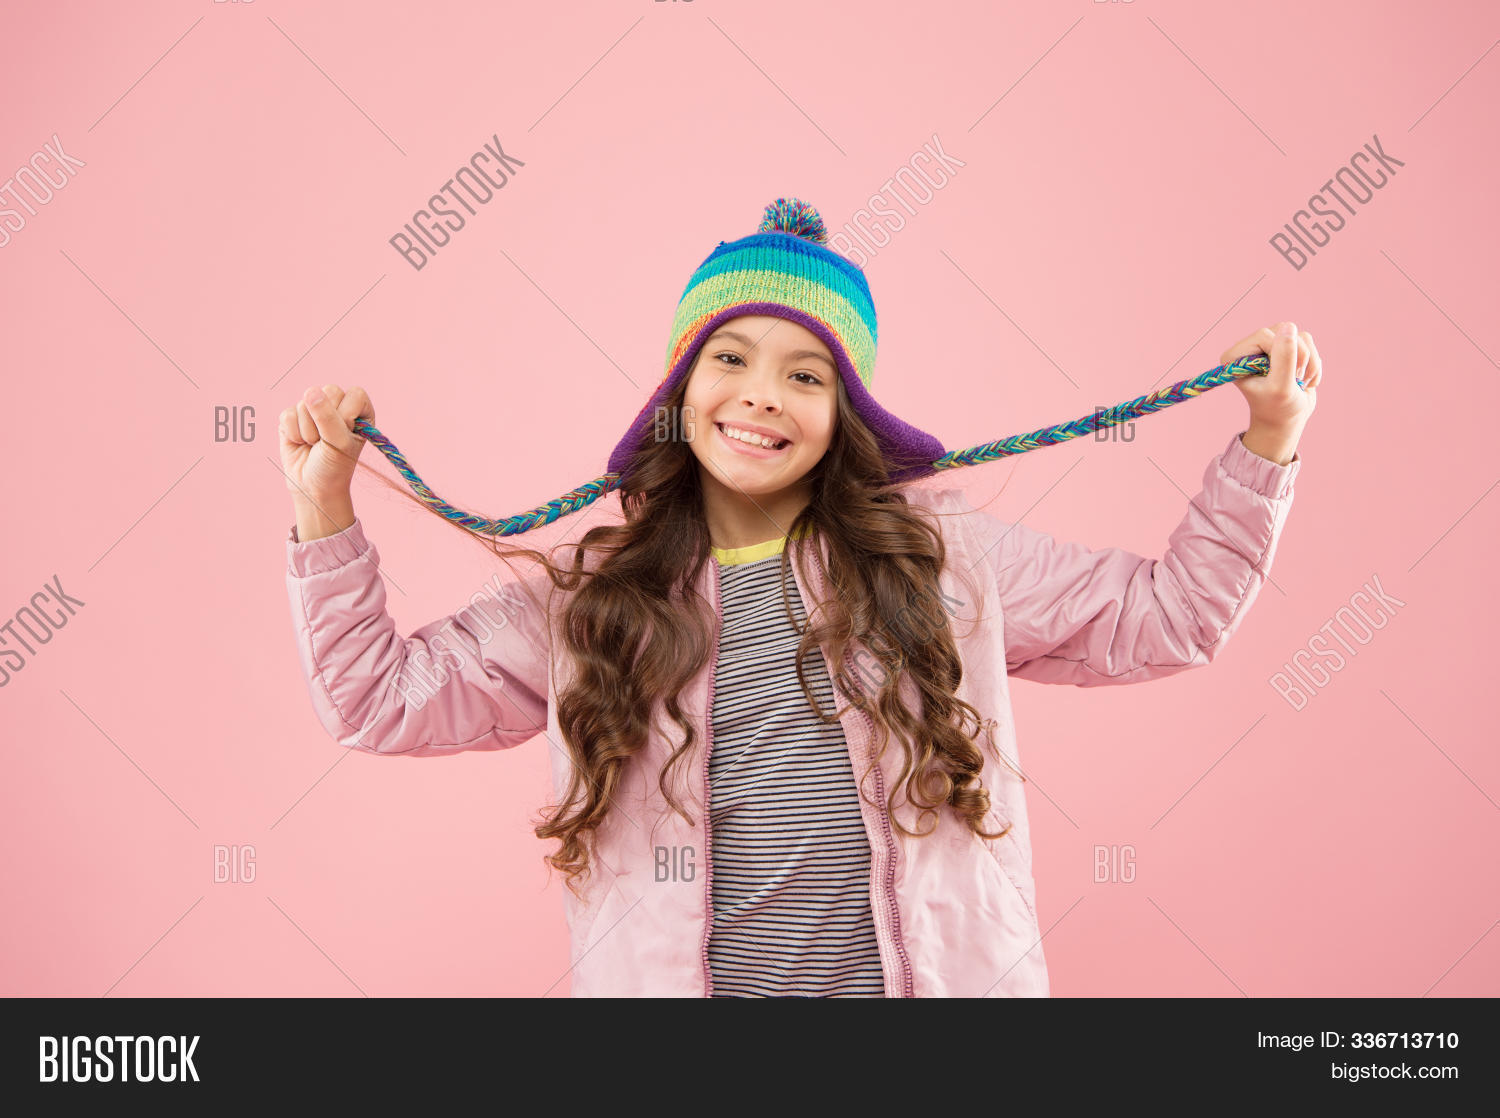 accessory,adorable,autumn,background,beautiful,beauty,boutique,brunette,casual,caucasian,child,childhood,clothes,cute,fall,fashion,fashionable,garment,girl,hair,hairstyle,hat,head,kid,knit,knitted,little,long,look,model,mood,pink,playful,protect,season,shop,small,style,stylish,trend,trendy,wardrobe,wear,winter